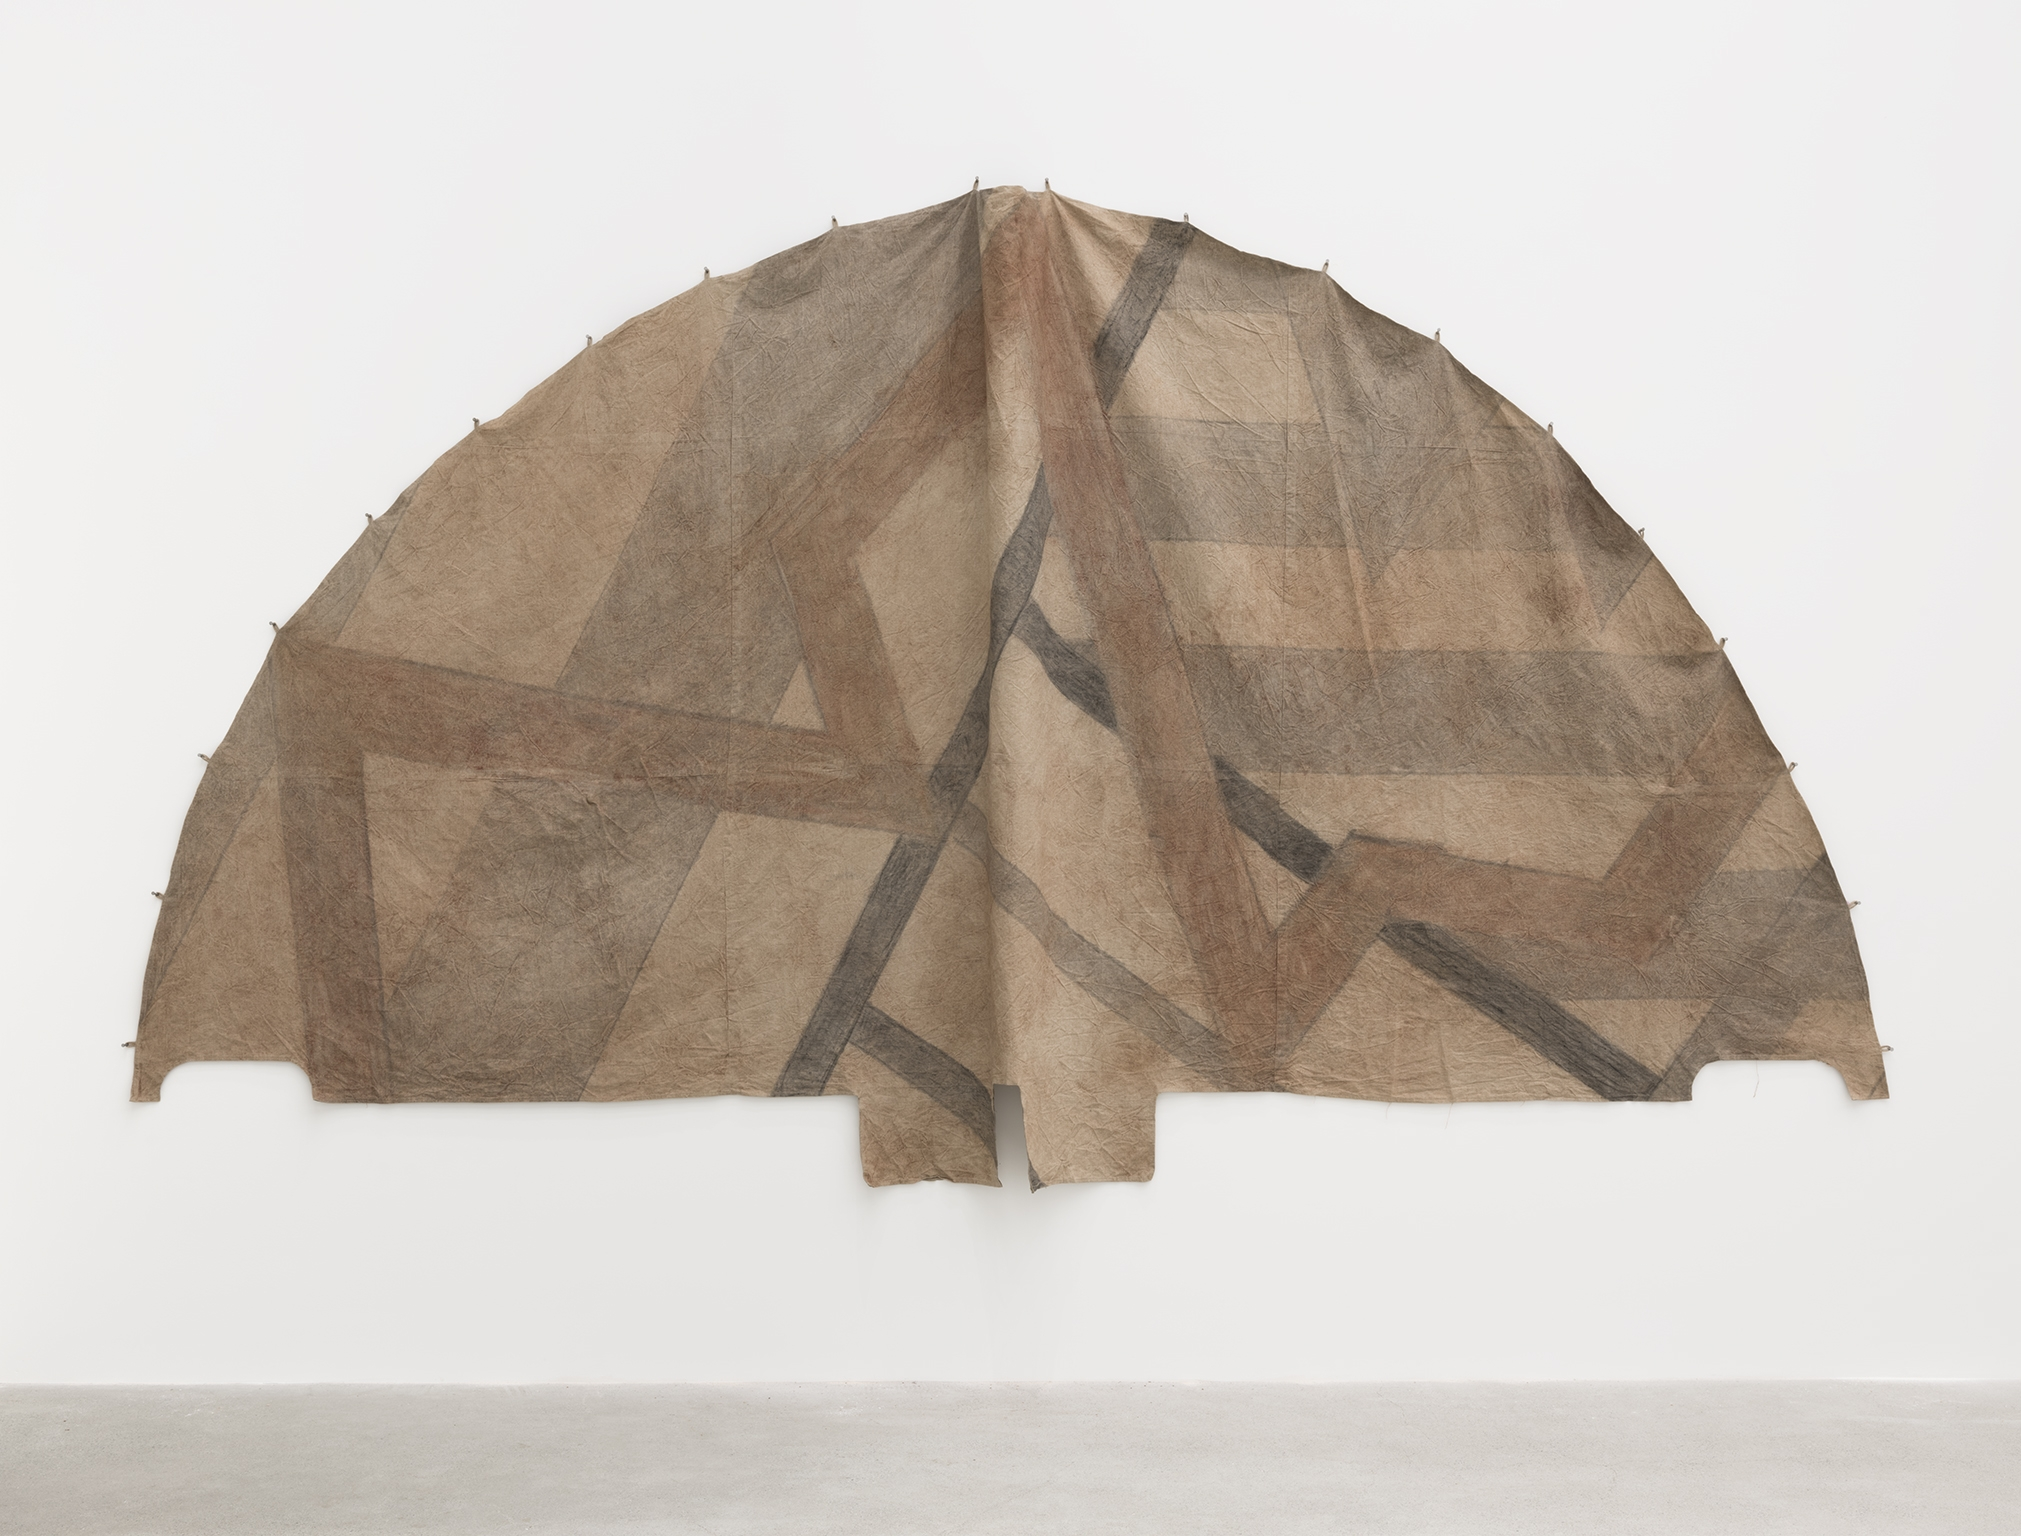 ​Duane Linklater, Tipi cover for new old geometries / little door for Sassa, 2018, digital print on hand-dyed linen, sumac, charcoal, nails, 110 x 210 in. (278 x 533 cm) by